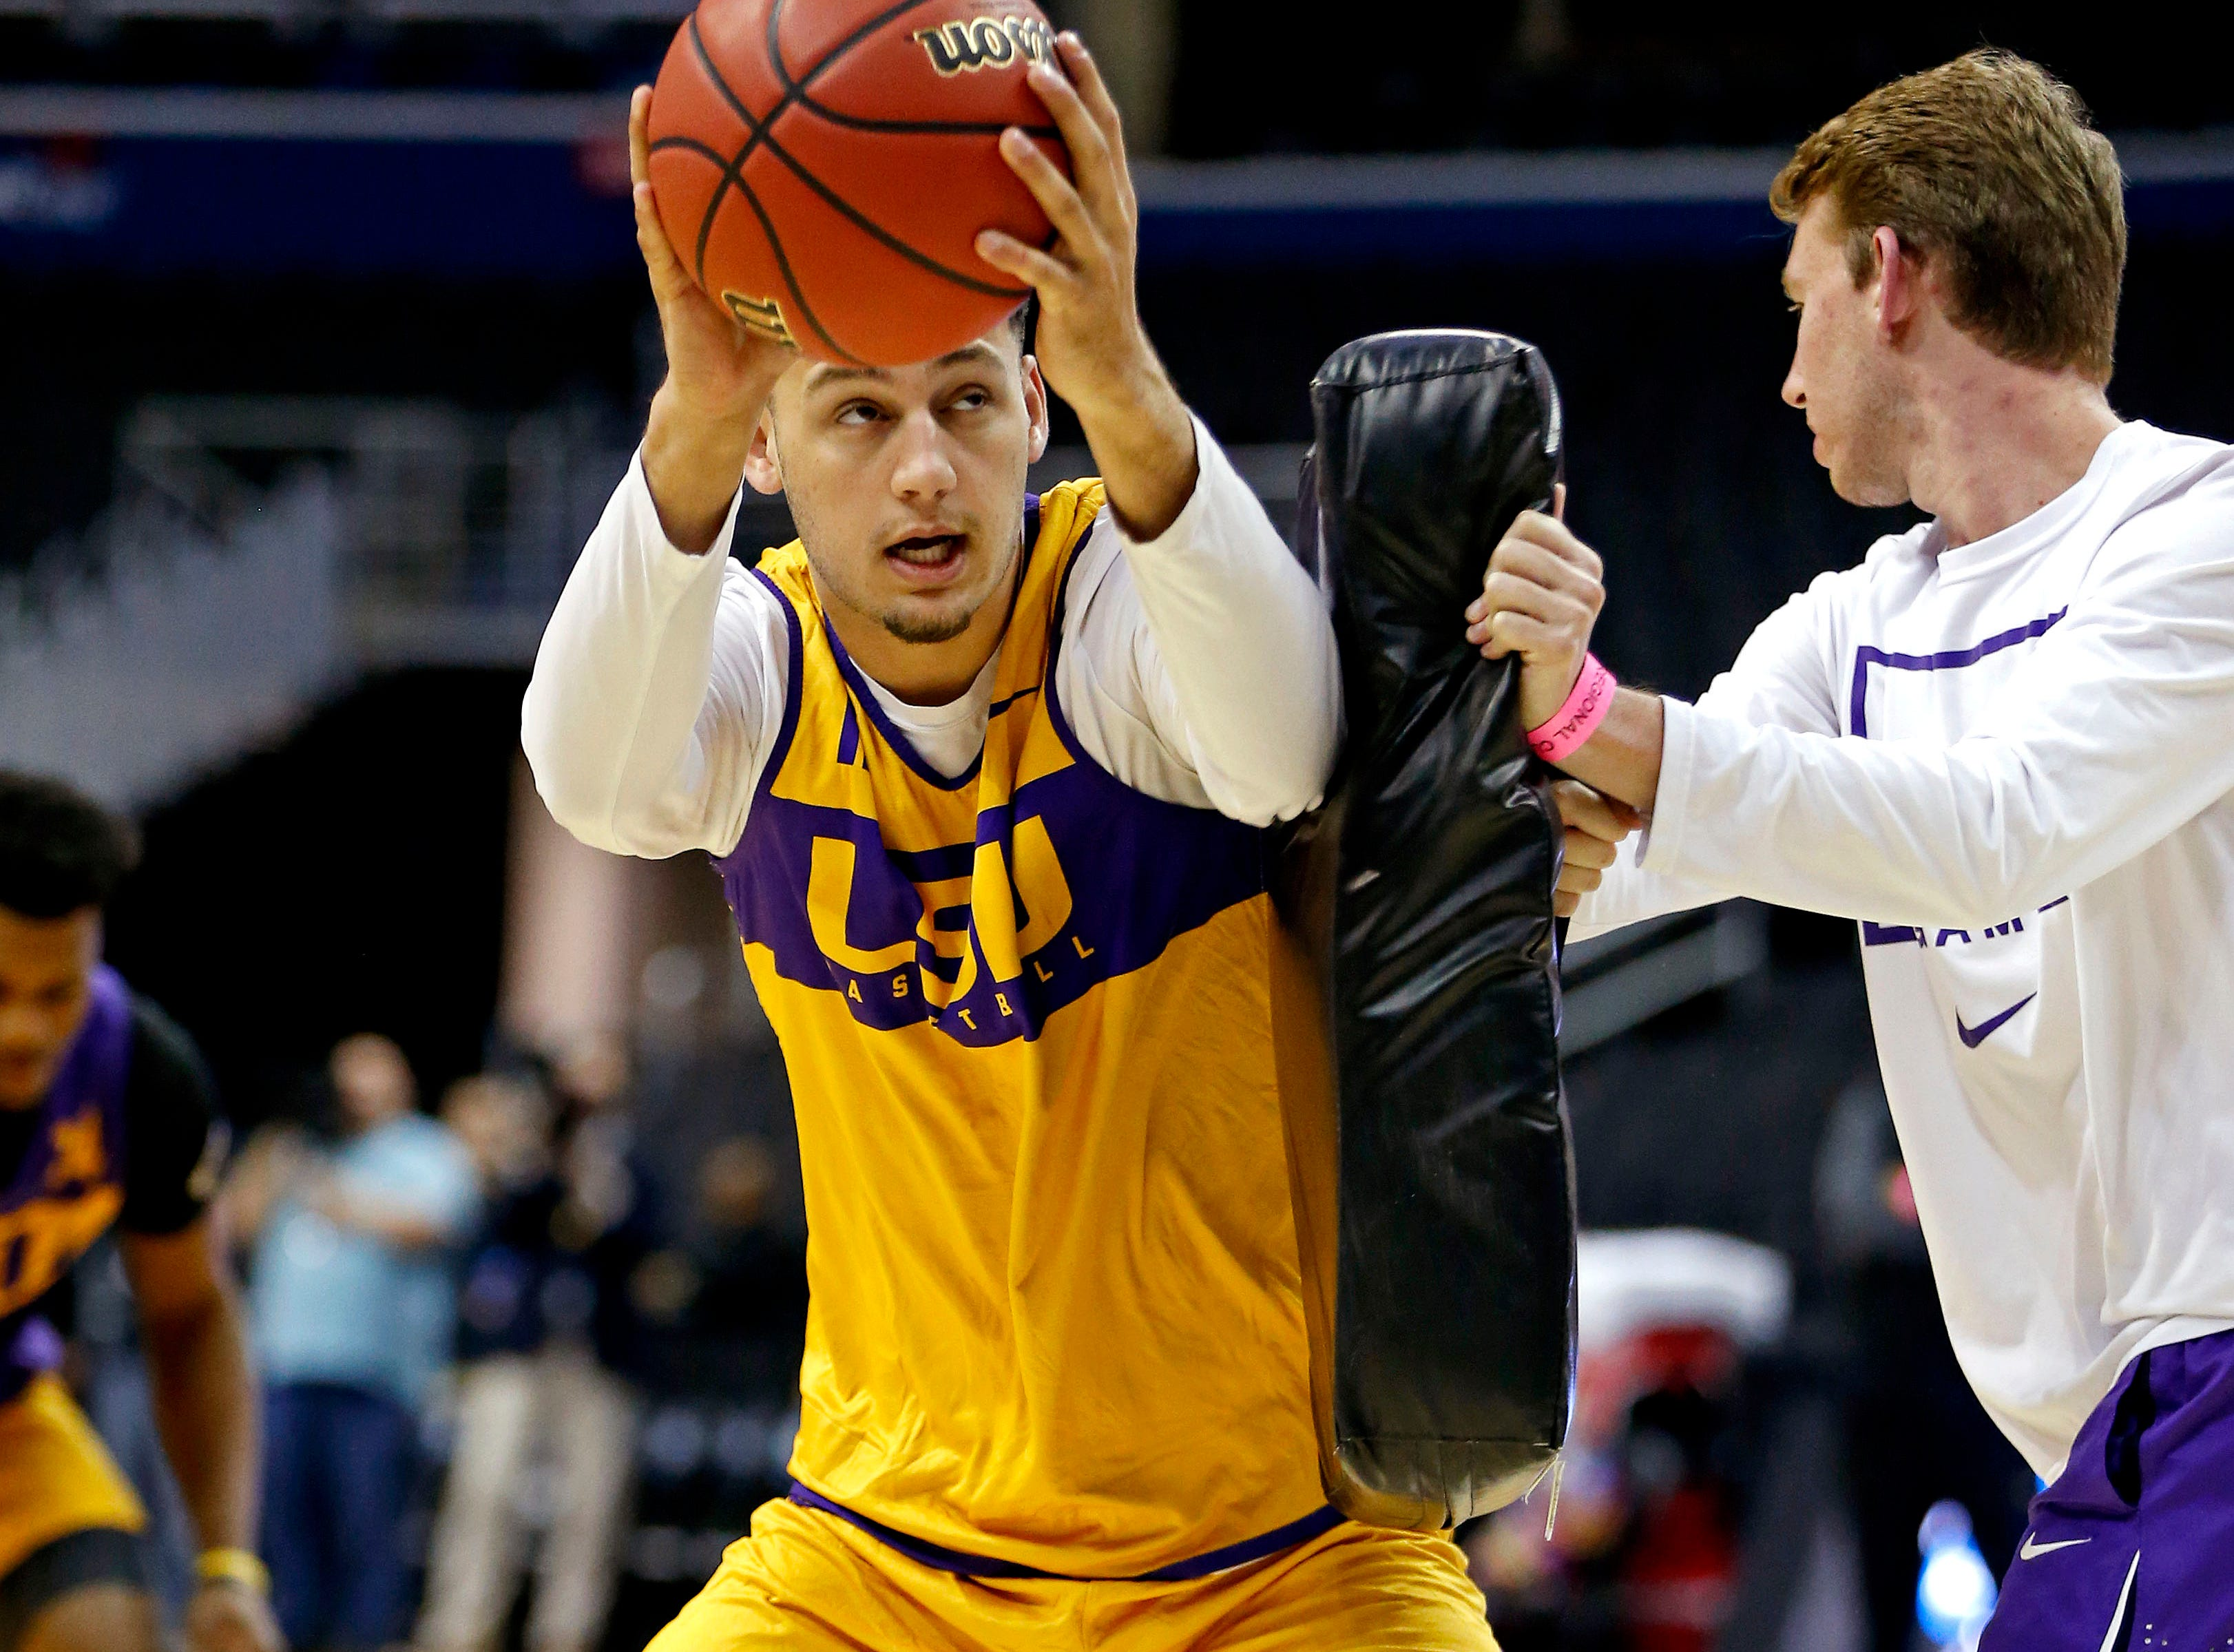 Mar 28, 2019; Washington, DC, USA; LSU Tigers guard Marshall Graves (12) handles the ball during practice for the east regional of the 2019 NCAA Tournament at Capital One Arena. Mandatory Credit: Amber Searls-USA TODAY Sports